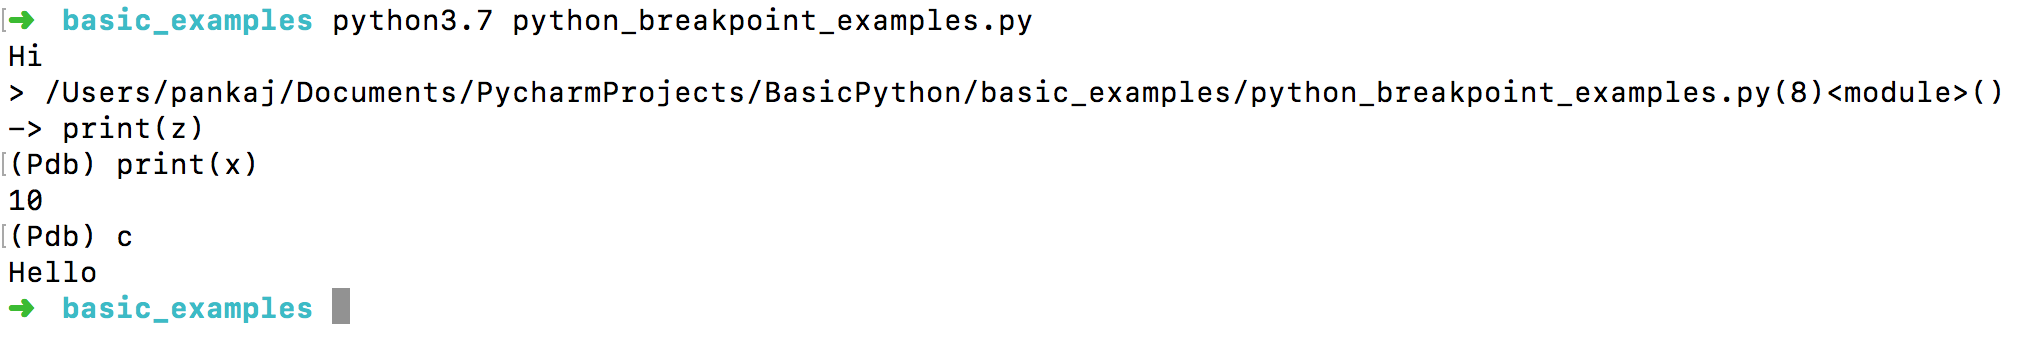 python breakpoint example